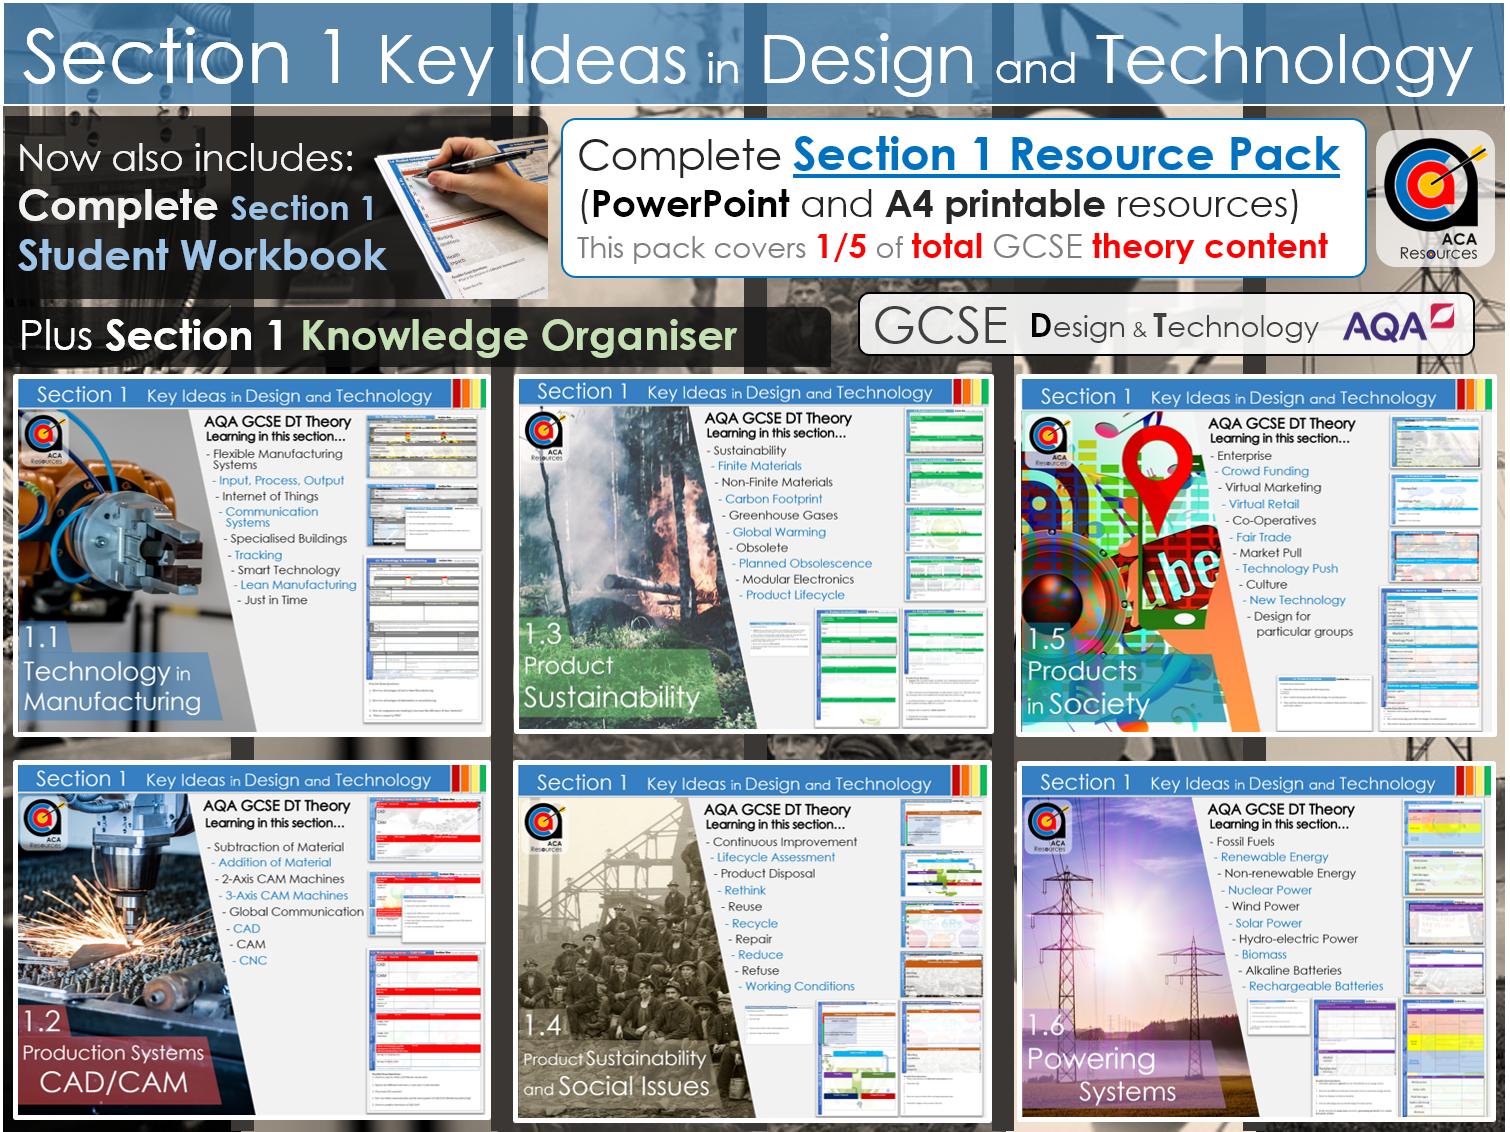 AQA GCSE DT -1- Key Ideas in Design and Technology